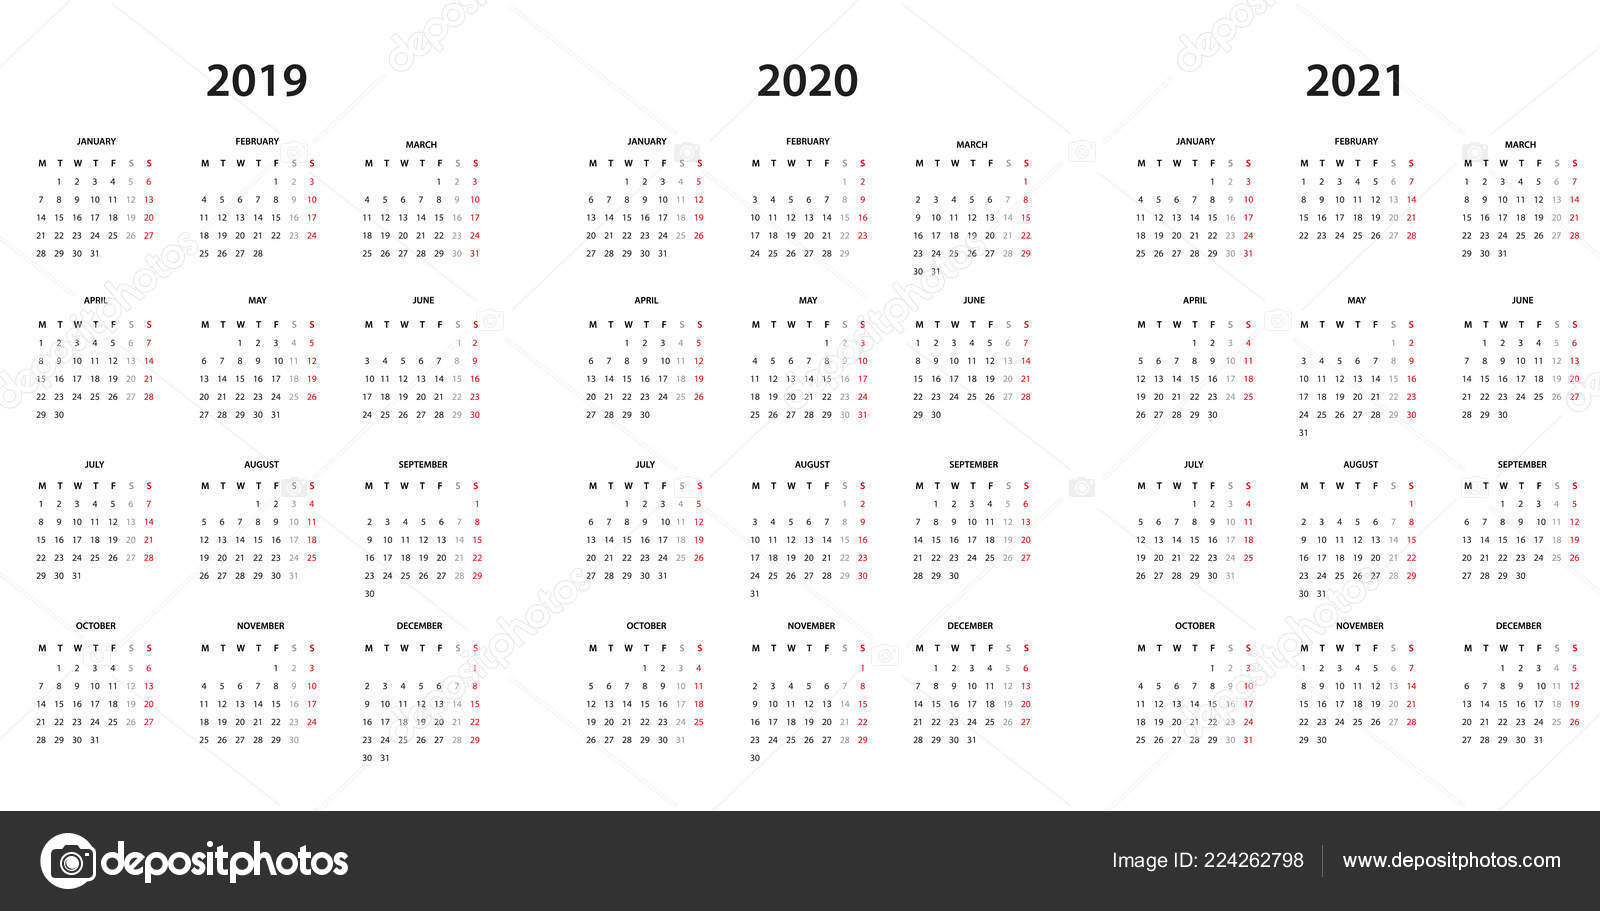 Calendrier 2020 2021.Calendar 2019 2020 2021 Simple Template Stock Vector